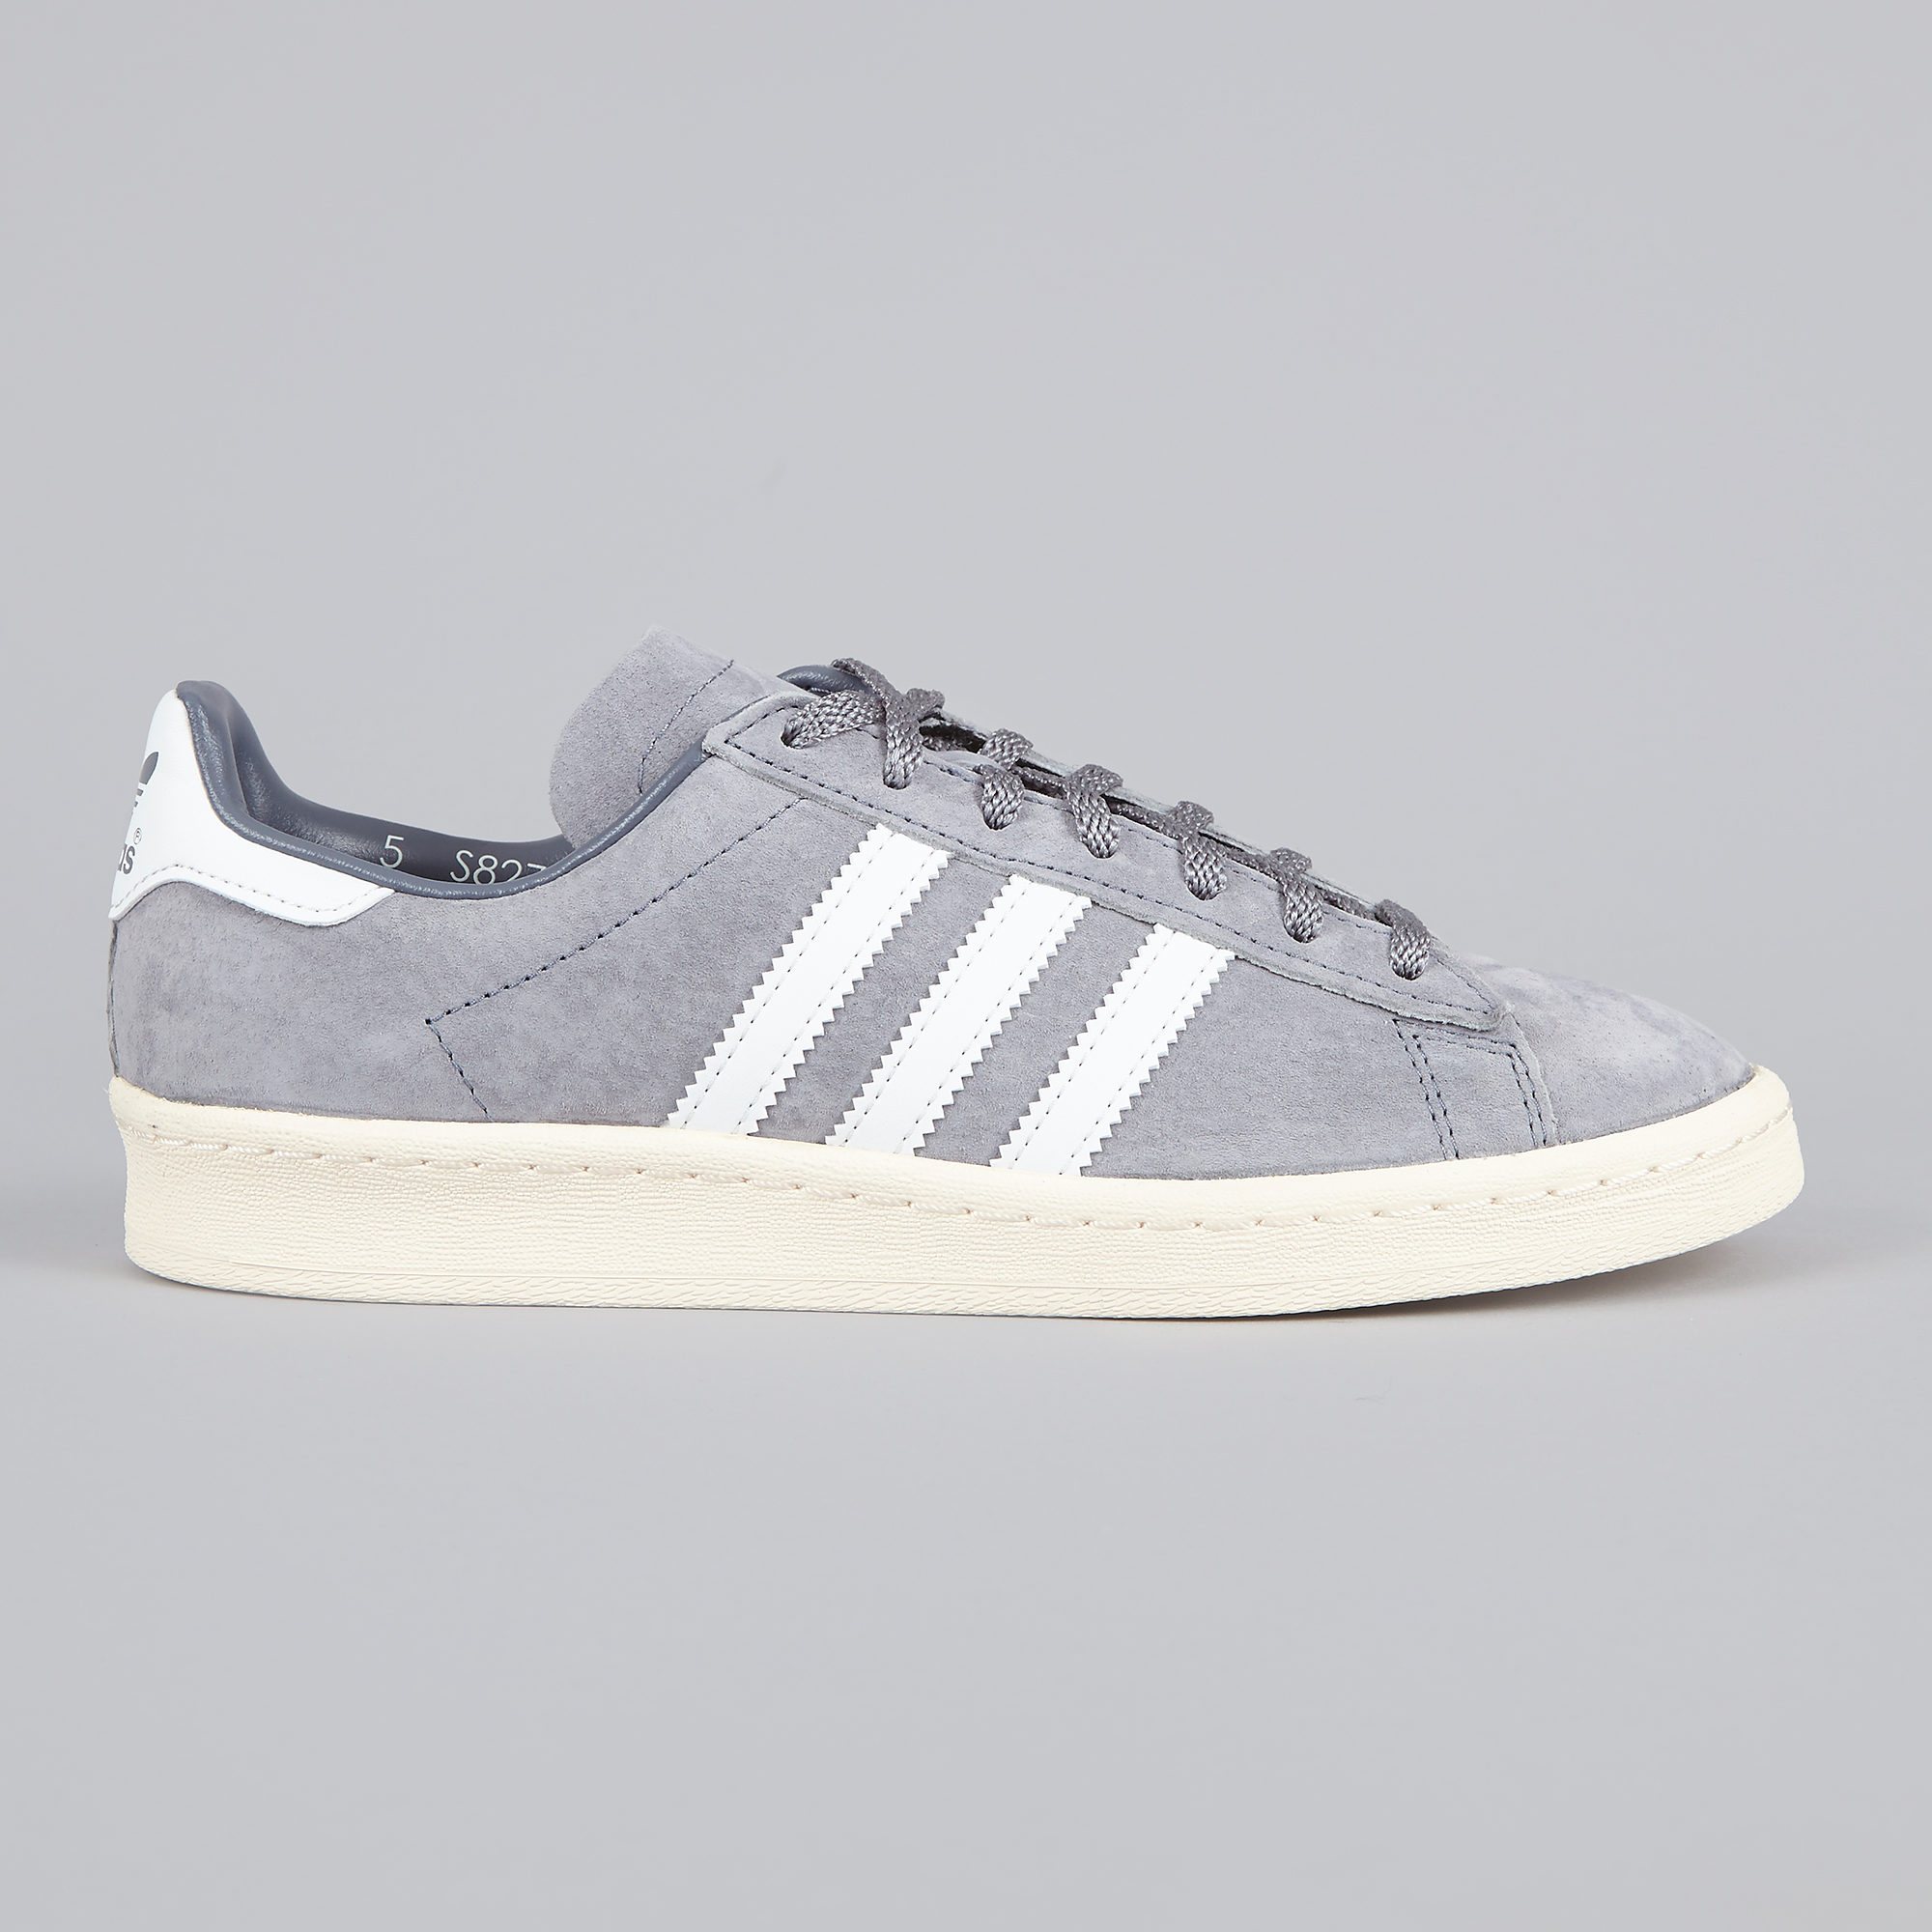 Adidas Campus 80s Japan Pack VNTG - Grey White 45f9d3571